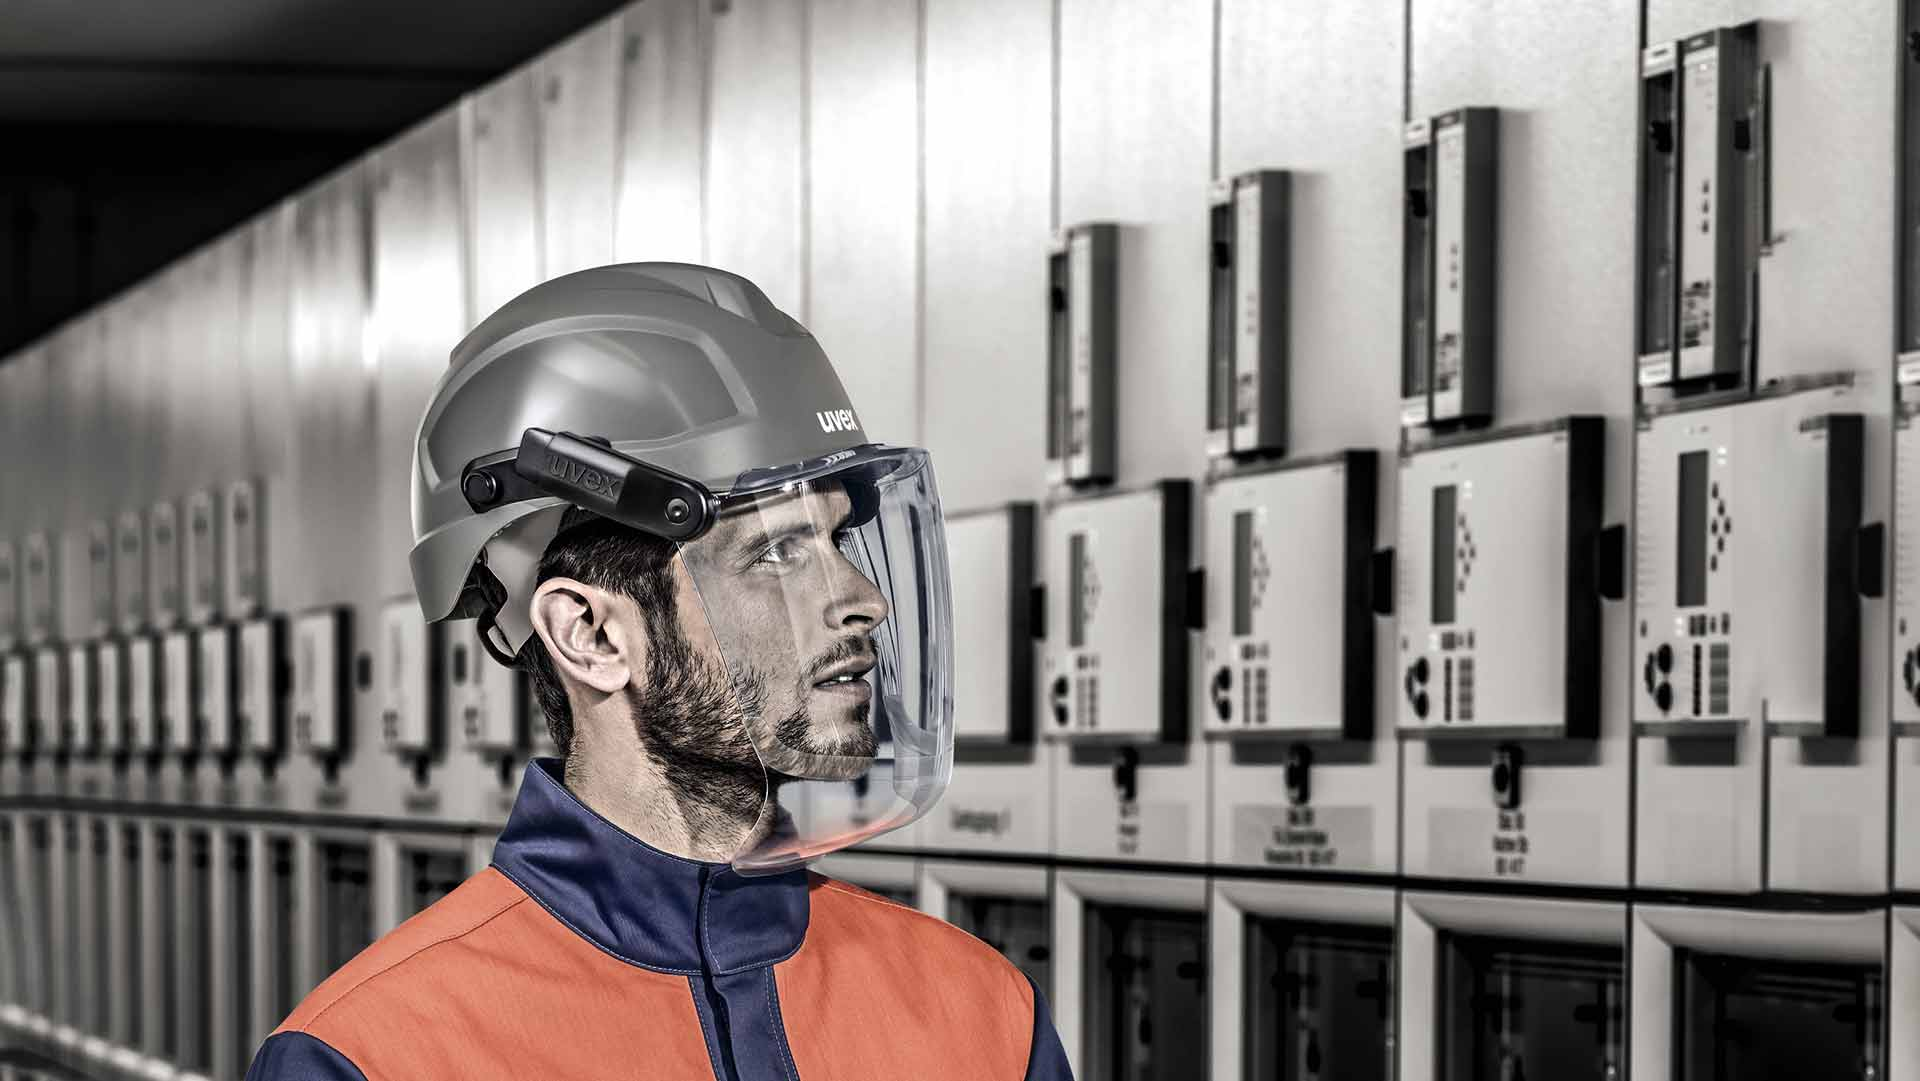 Male employee wearing uvex helmet and visor system